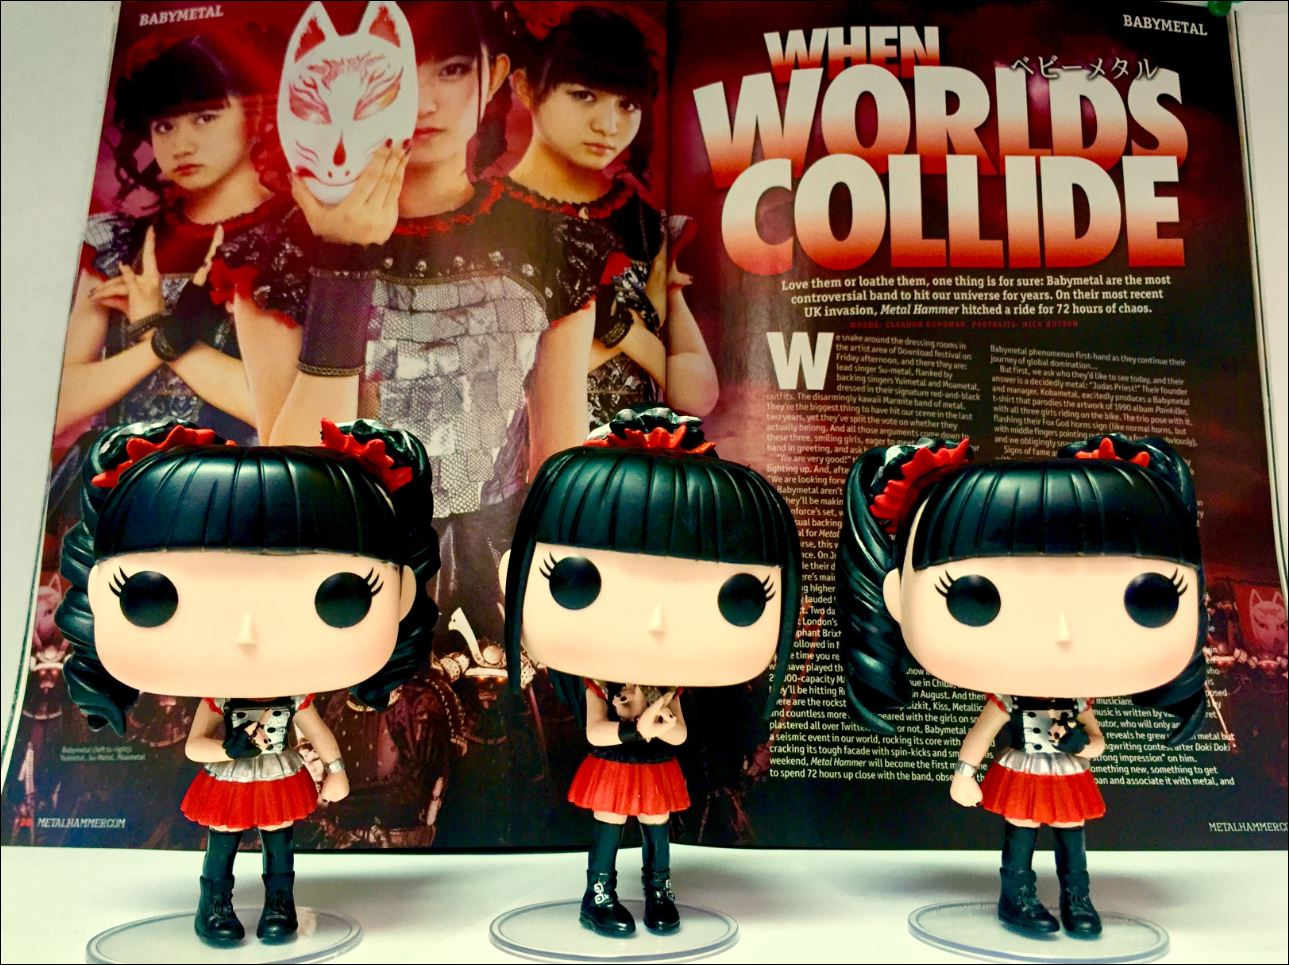 NekoPOP-BABYMETAL-Funko-POP-Review-A3